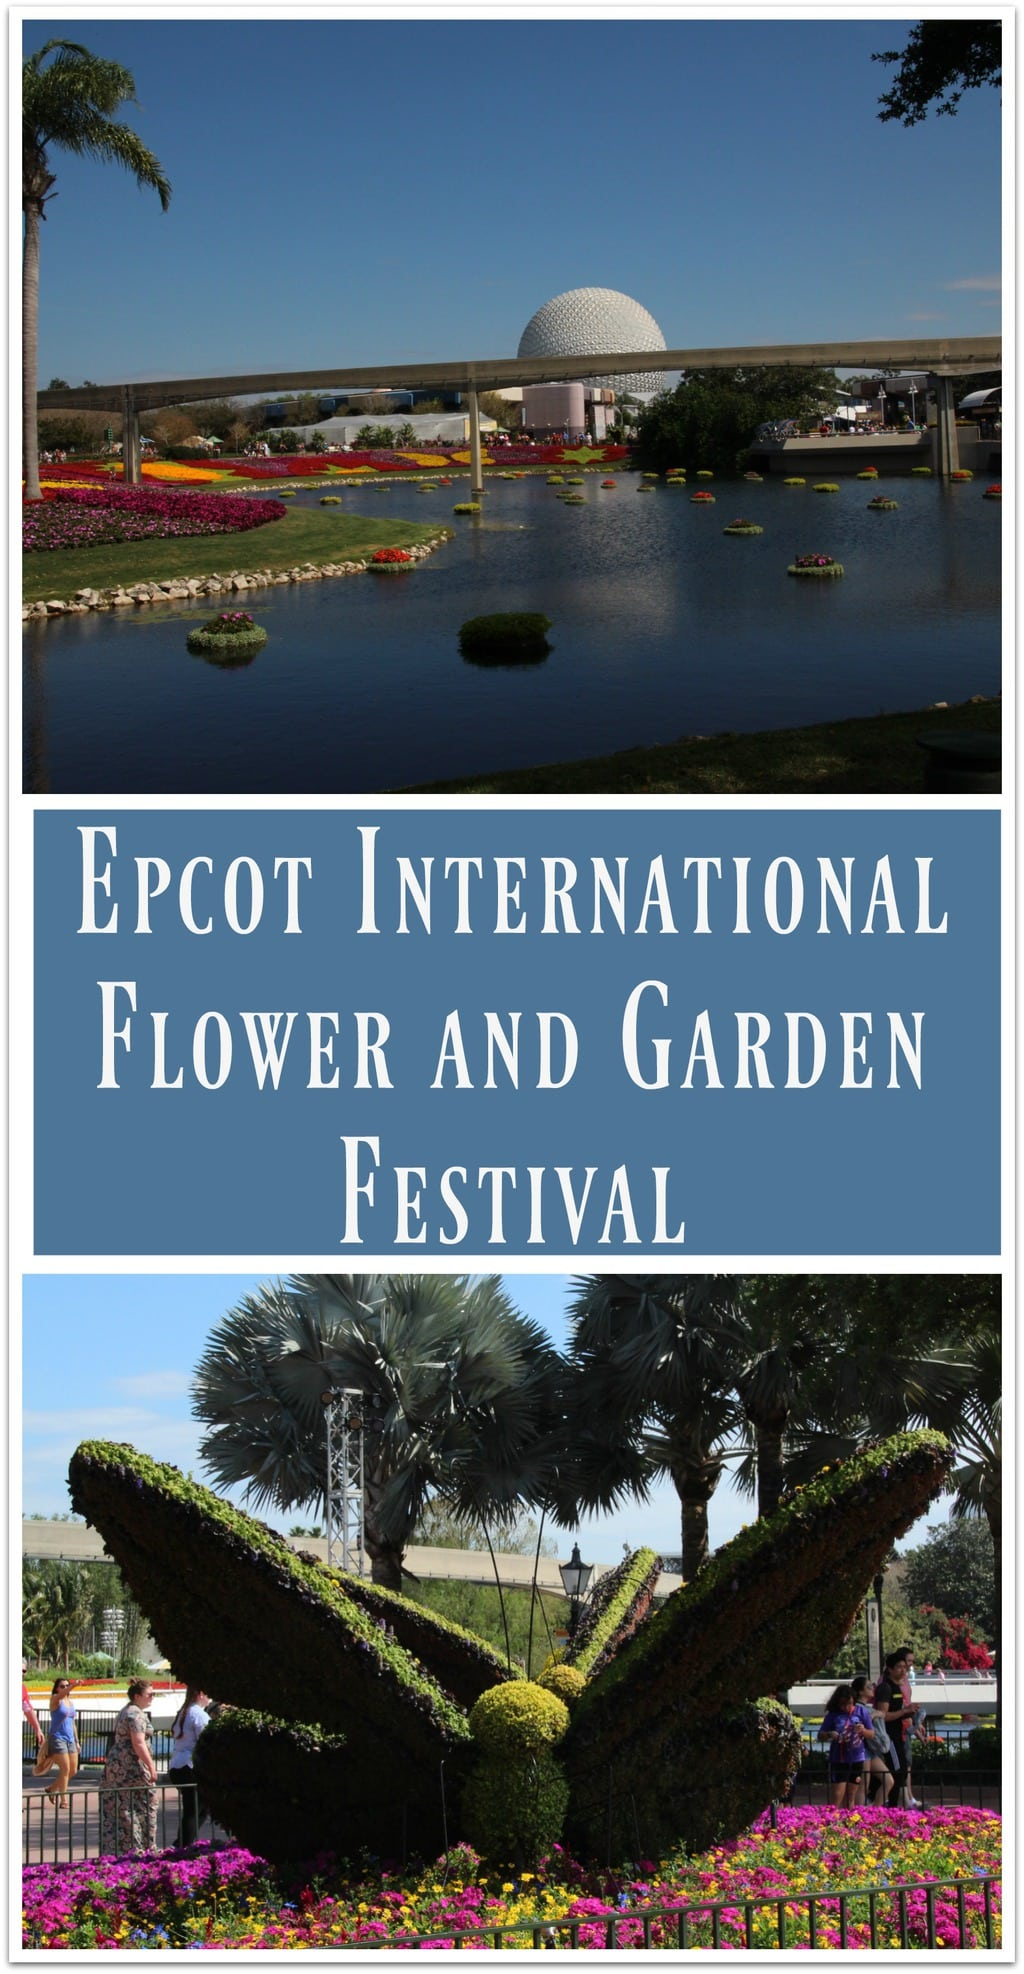 I've lost count at how many times I've been to the Epcot International Flower and Garden Festival over the 20-plus years it's been going on, but it's a lot! And there's a good reason for that. This is a garden party that is a feast for your all your senses!